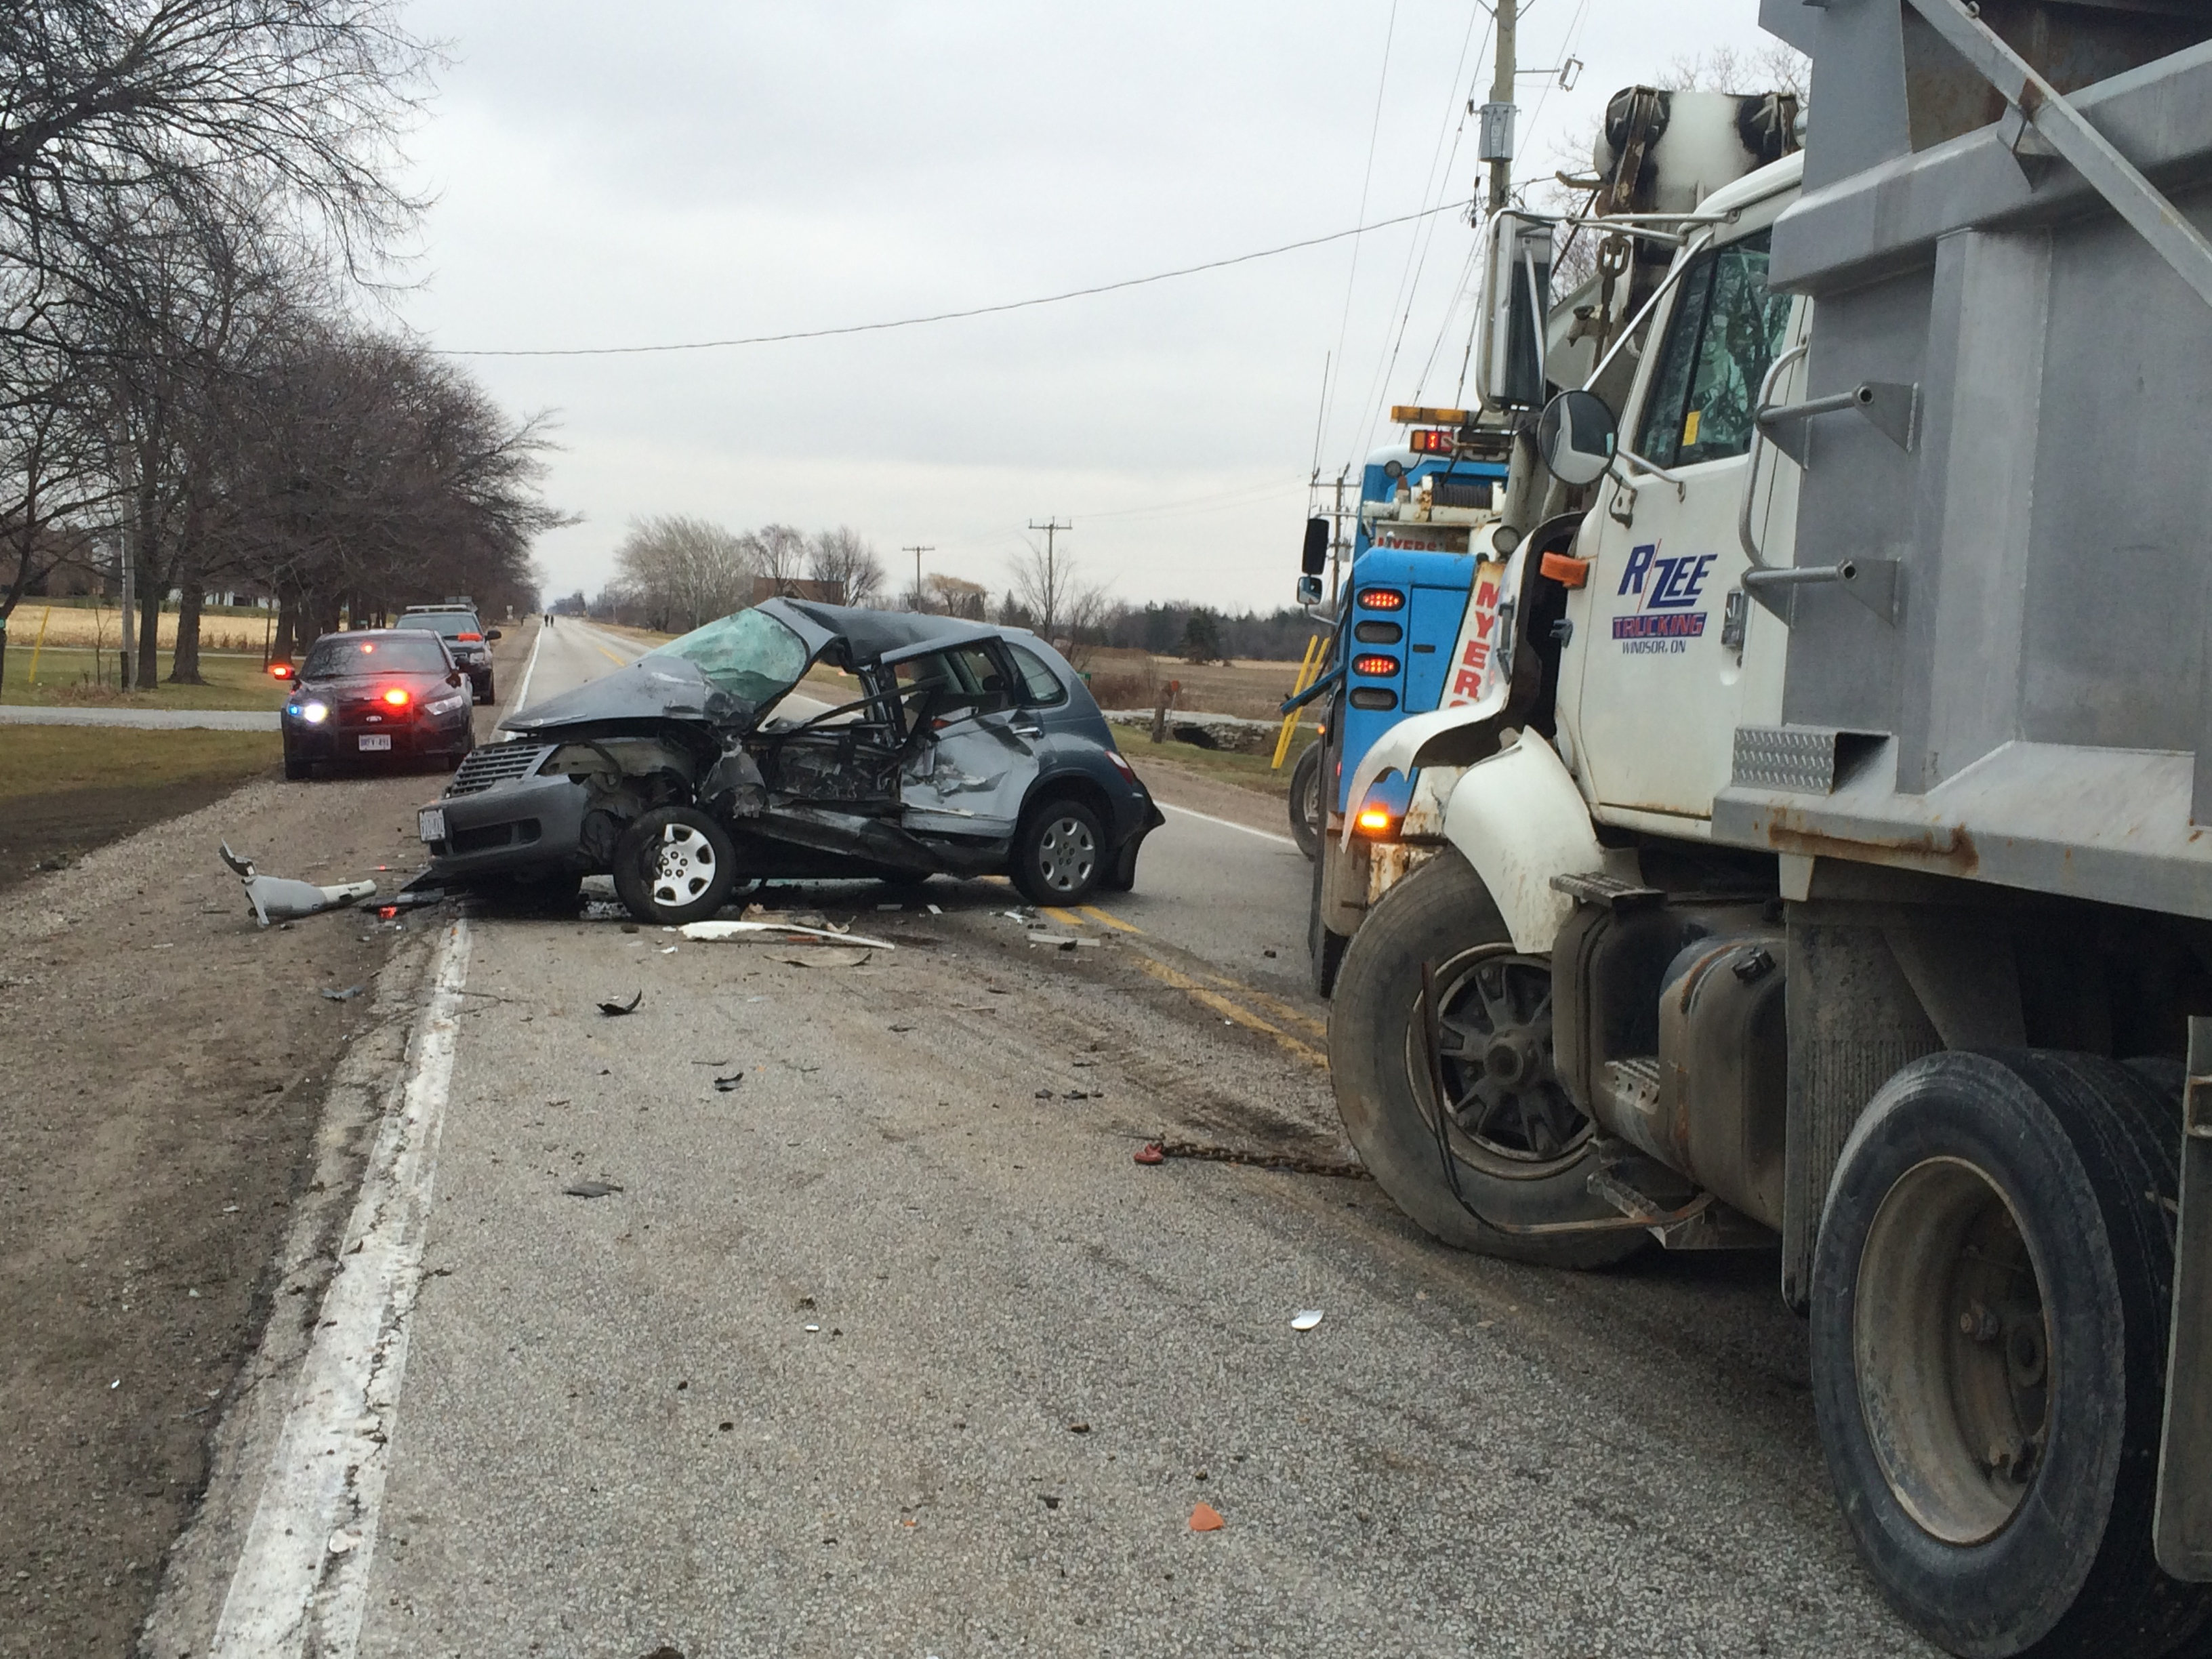 Three vehicles involved in a fatal crash on County Rd. 46 at County Rd. 23 in Lakeshore on December 18, 2014. (Photo by Ricardo Veneza)